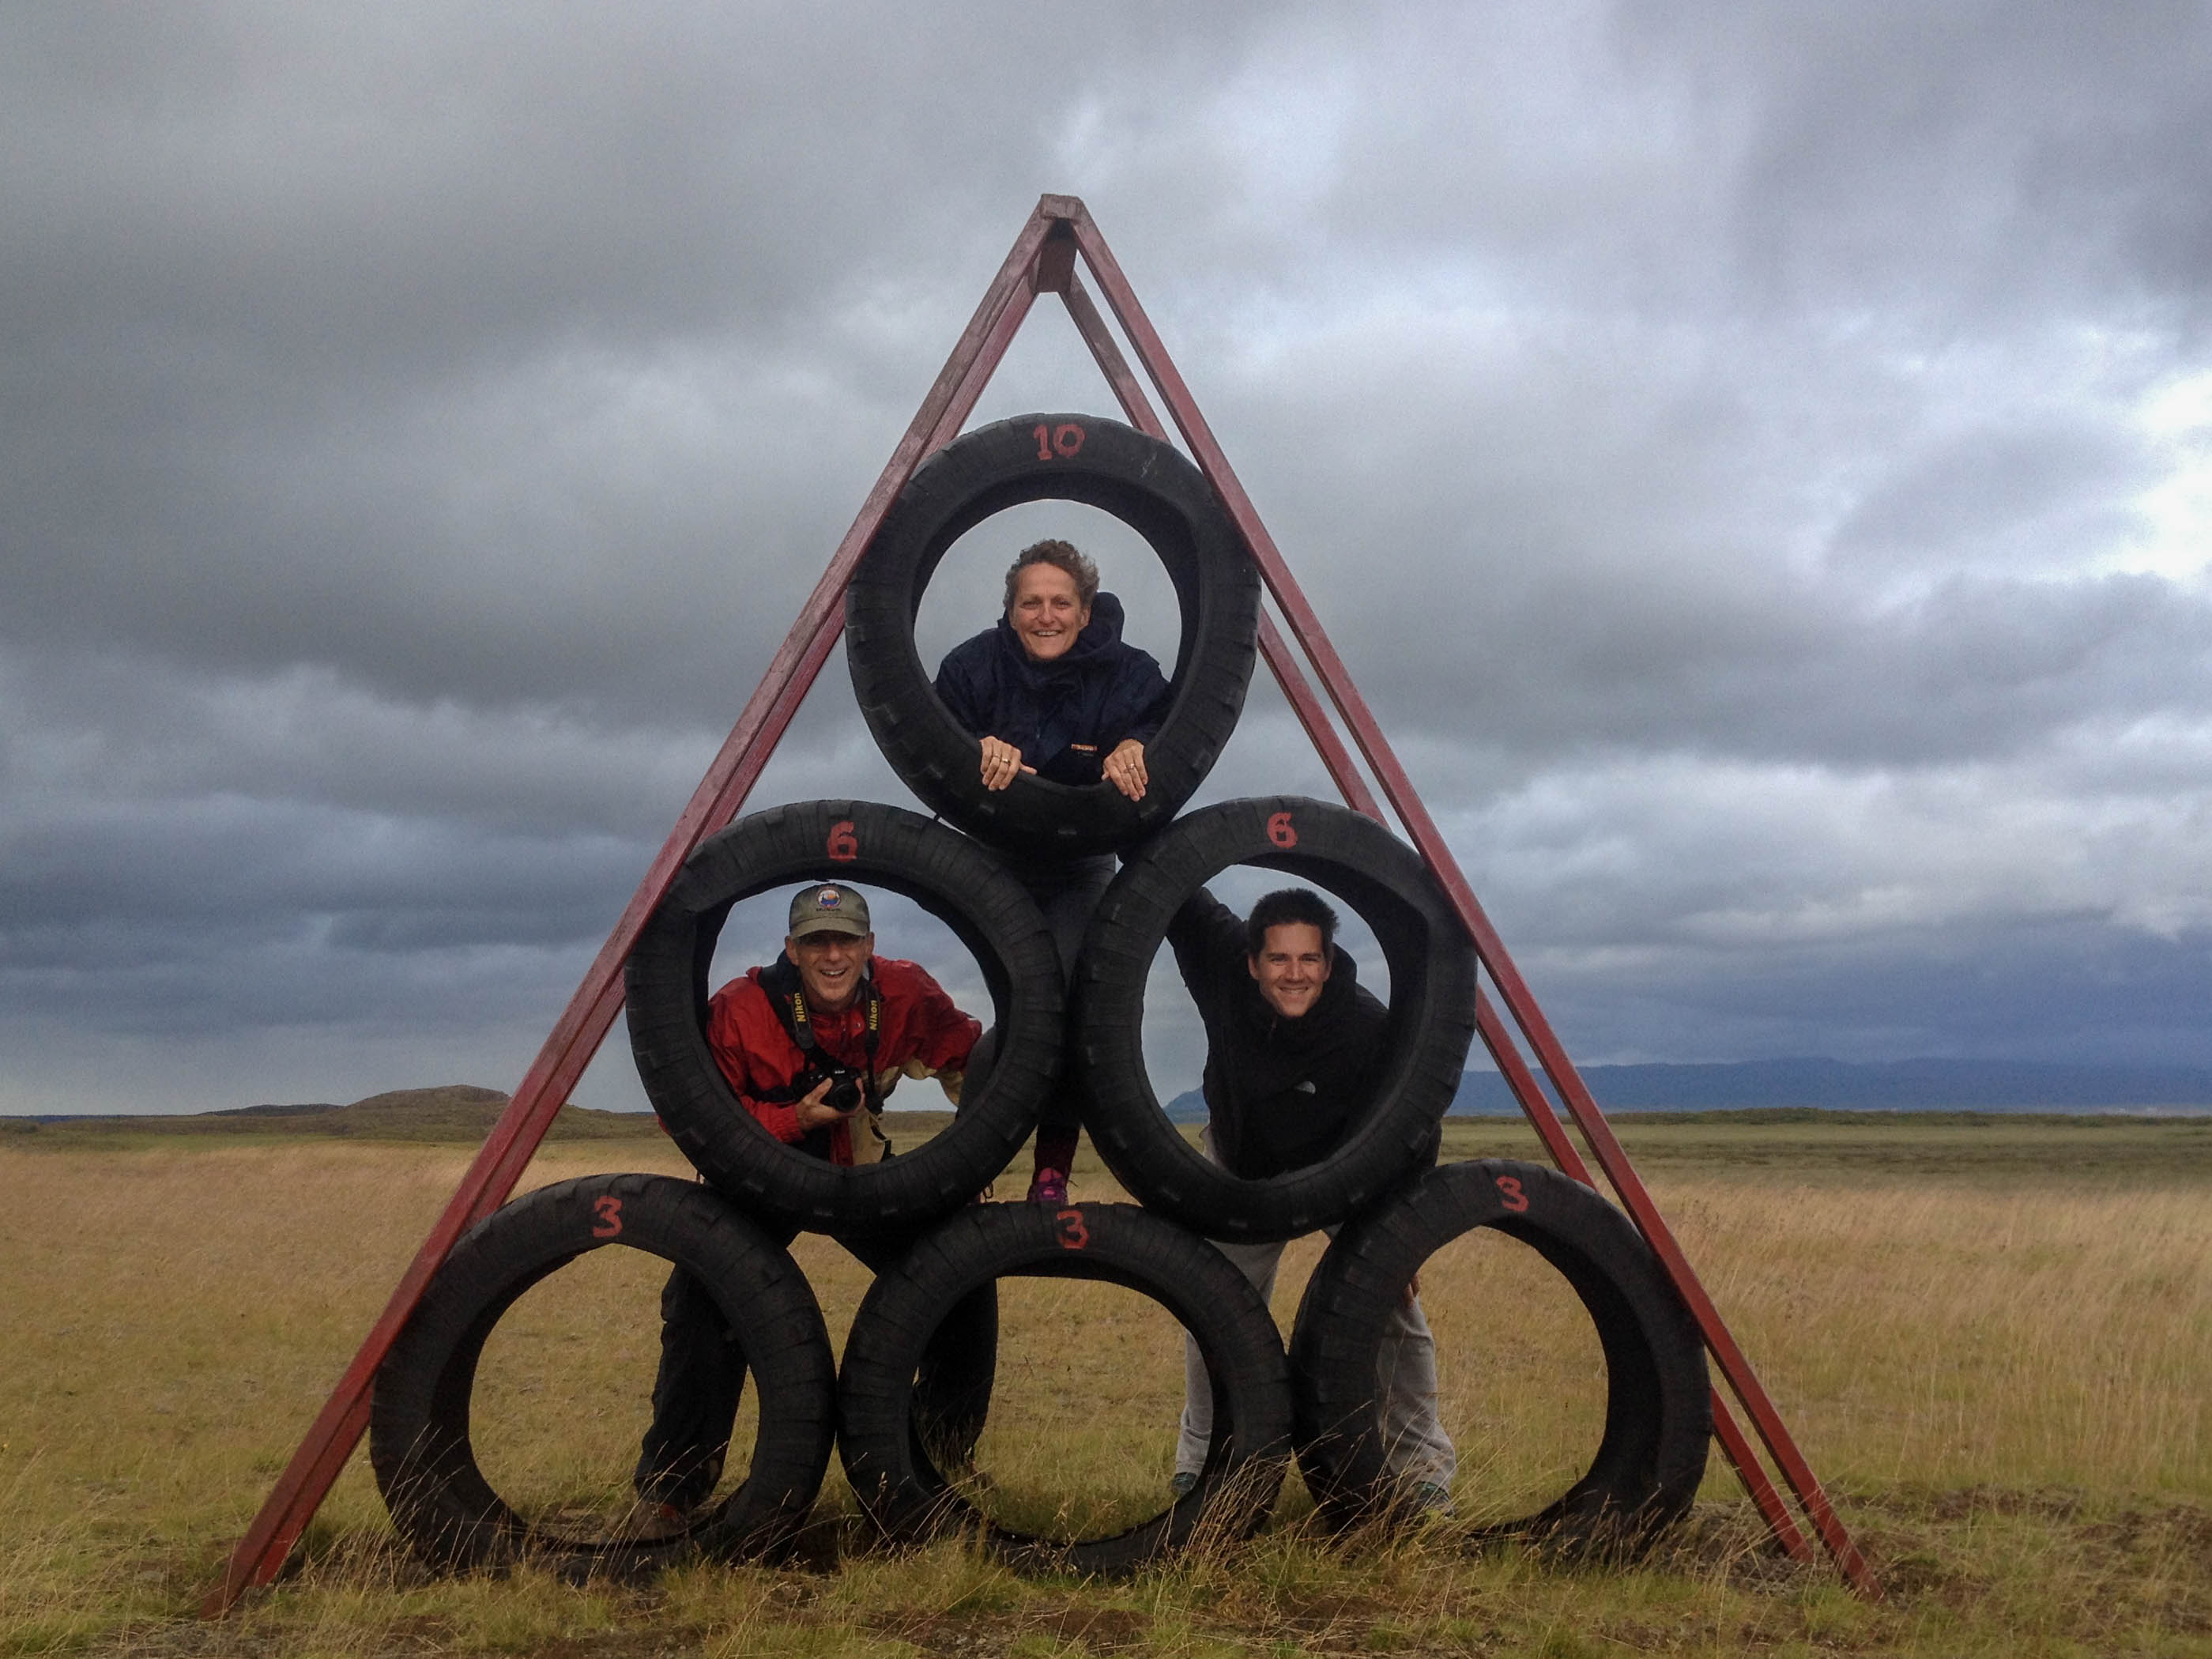 The Tire Pyramid at the Iceland Troll Gardens